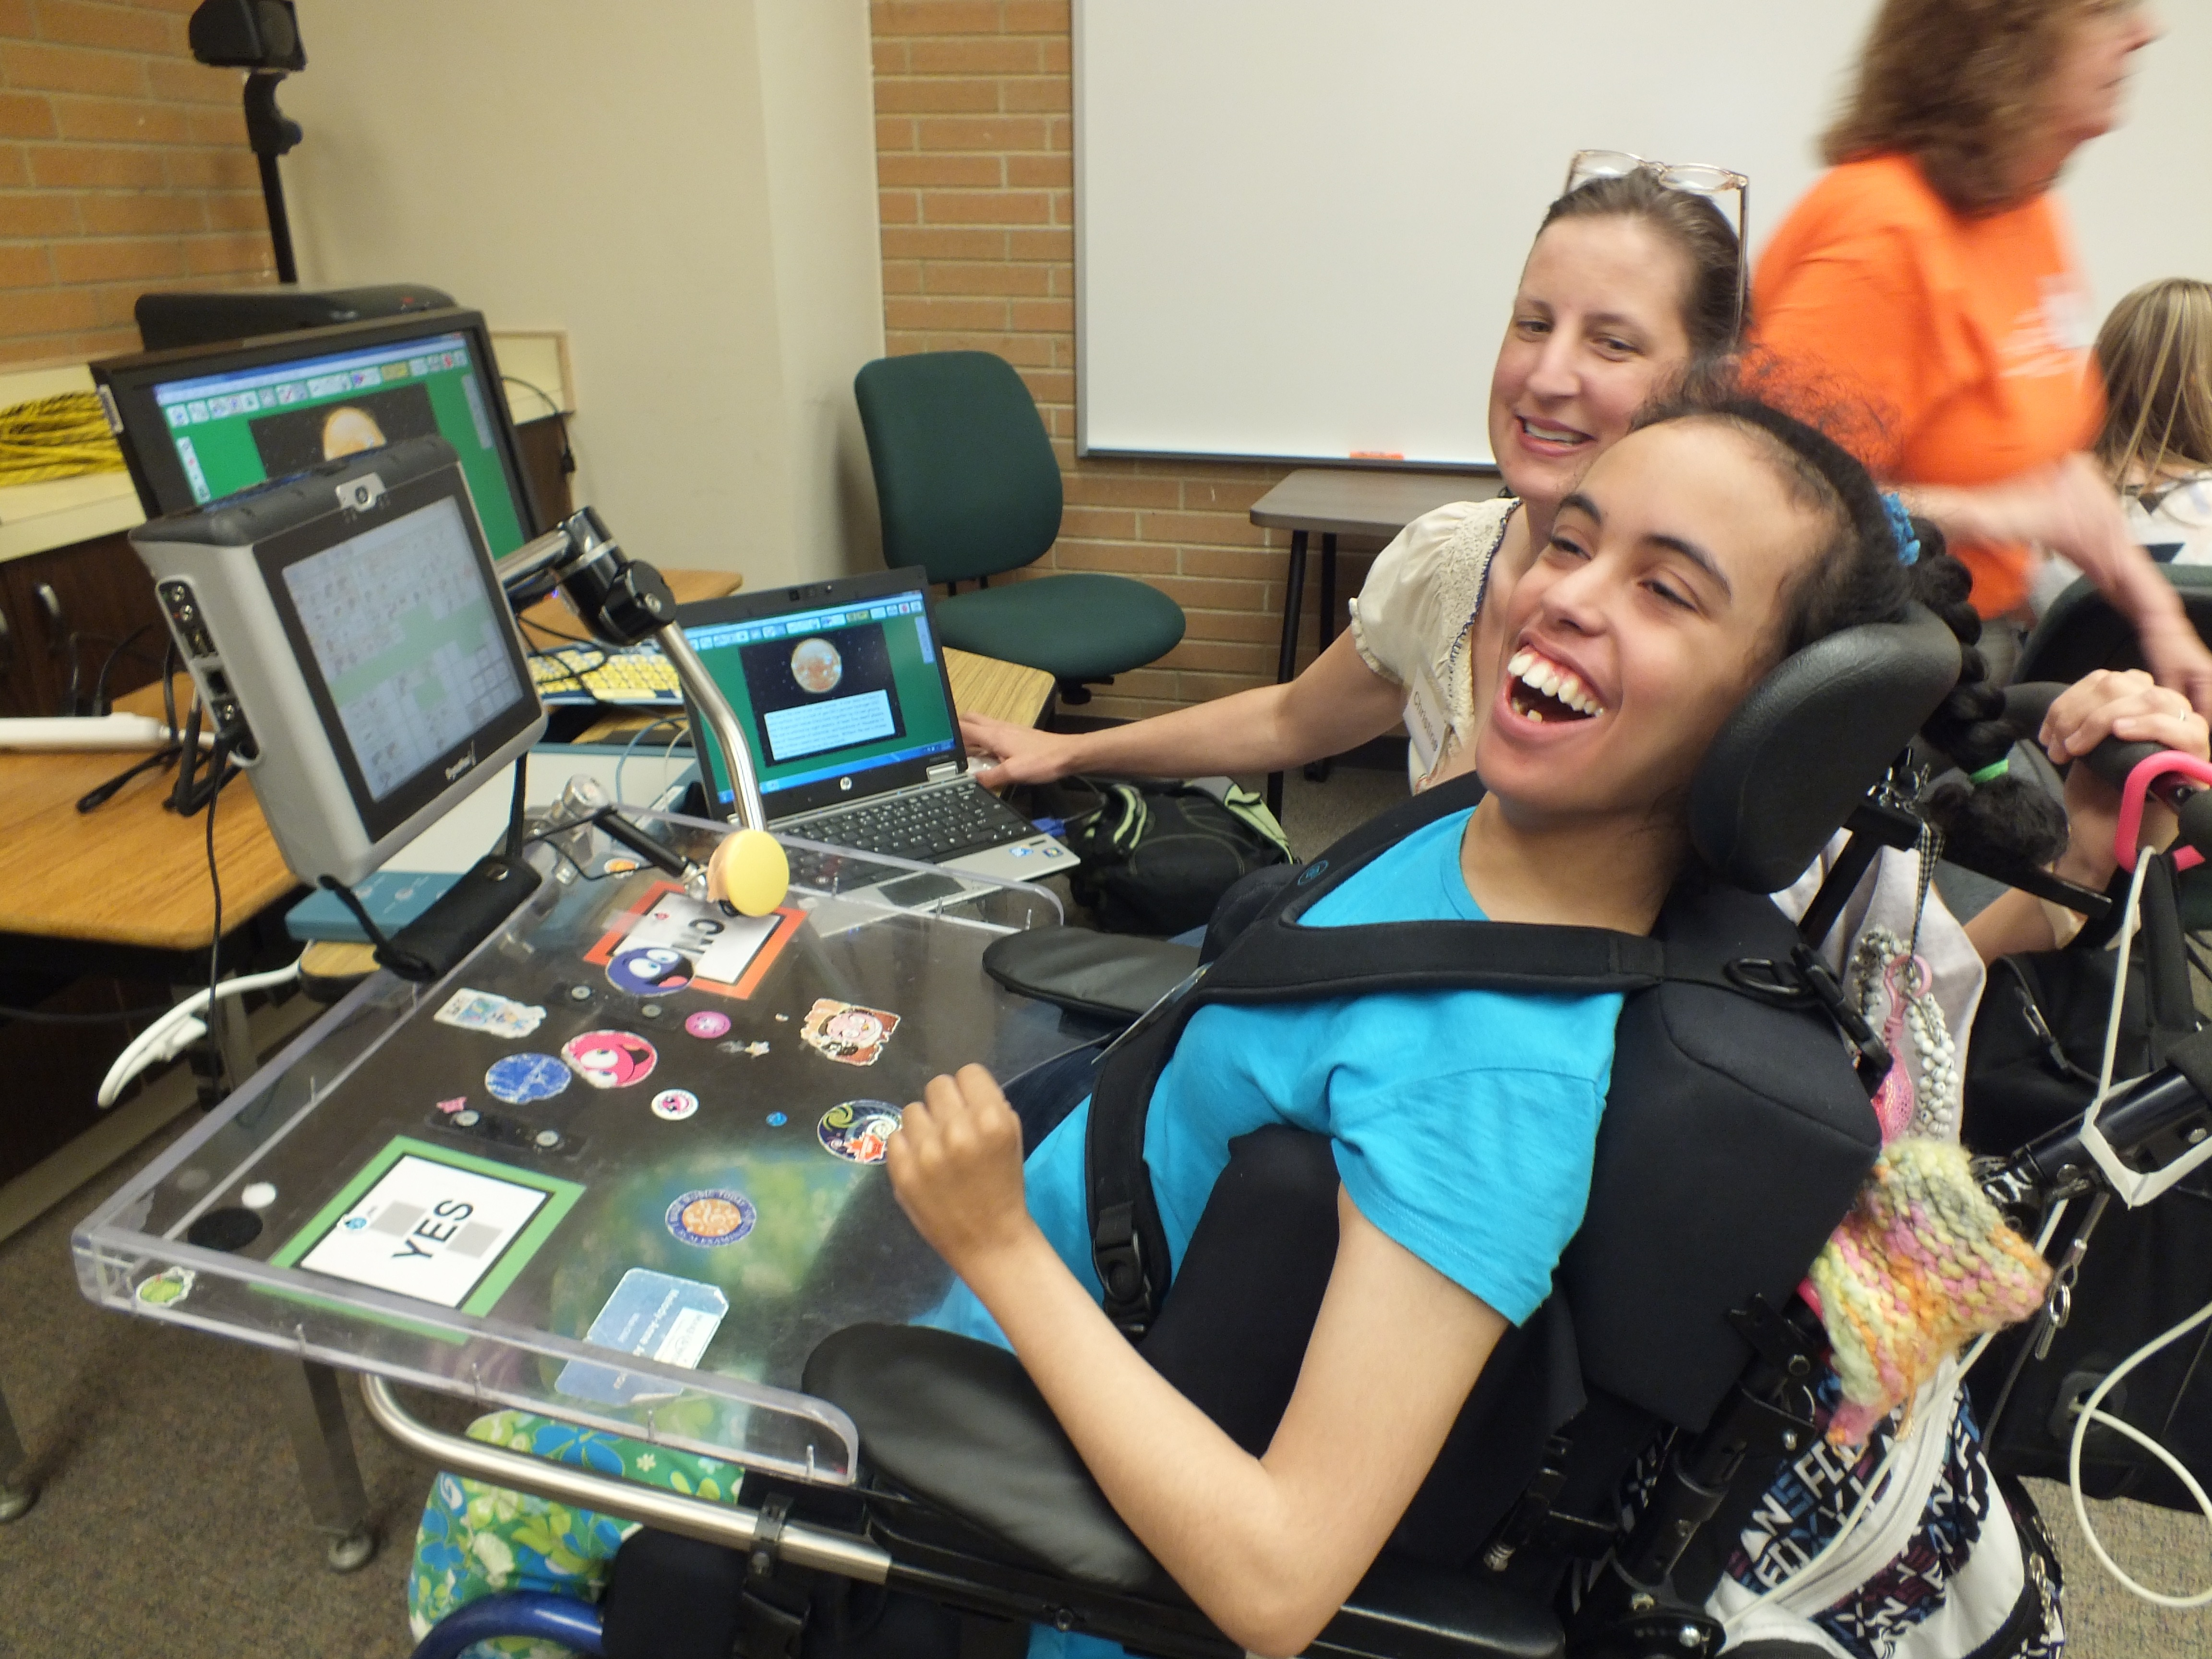 Untrapping The Mind New Kids Camp Focuses On Using Technology To